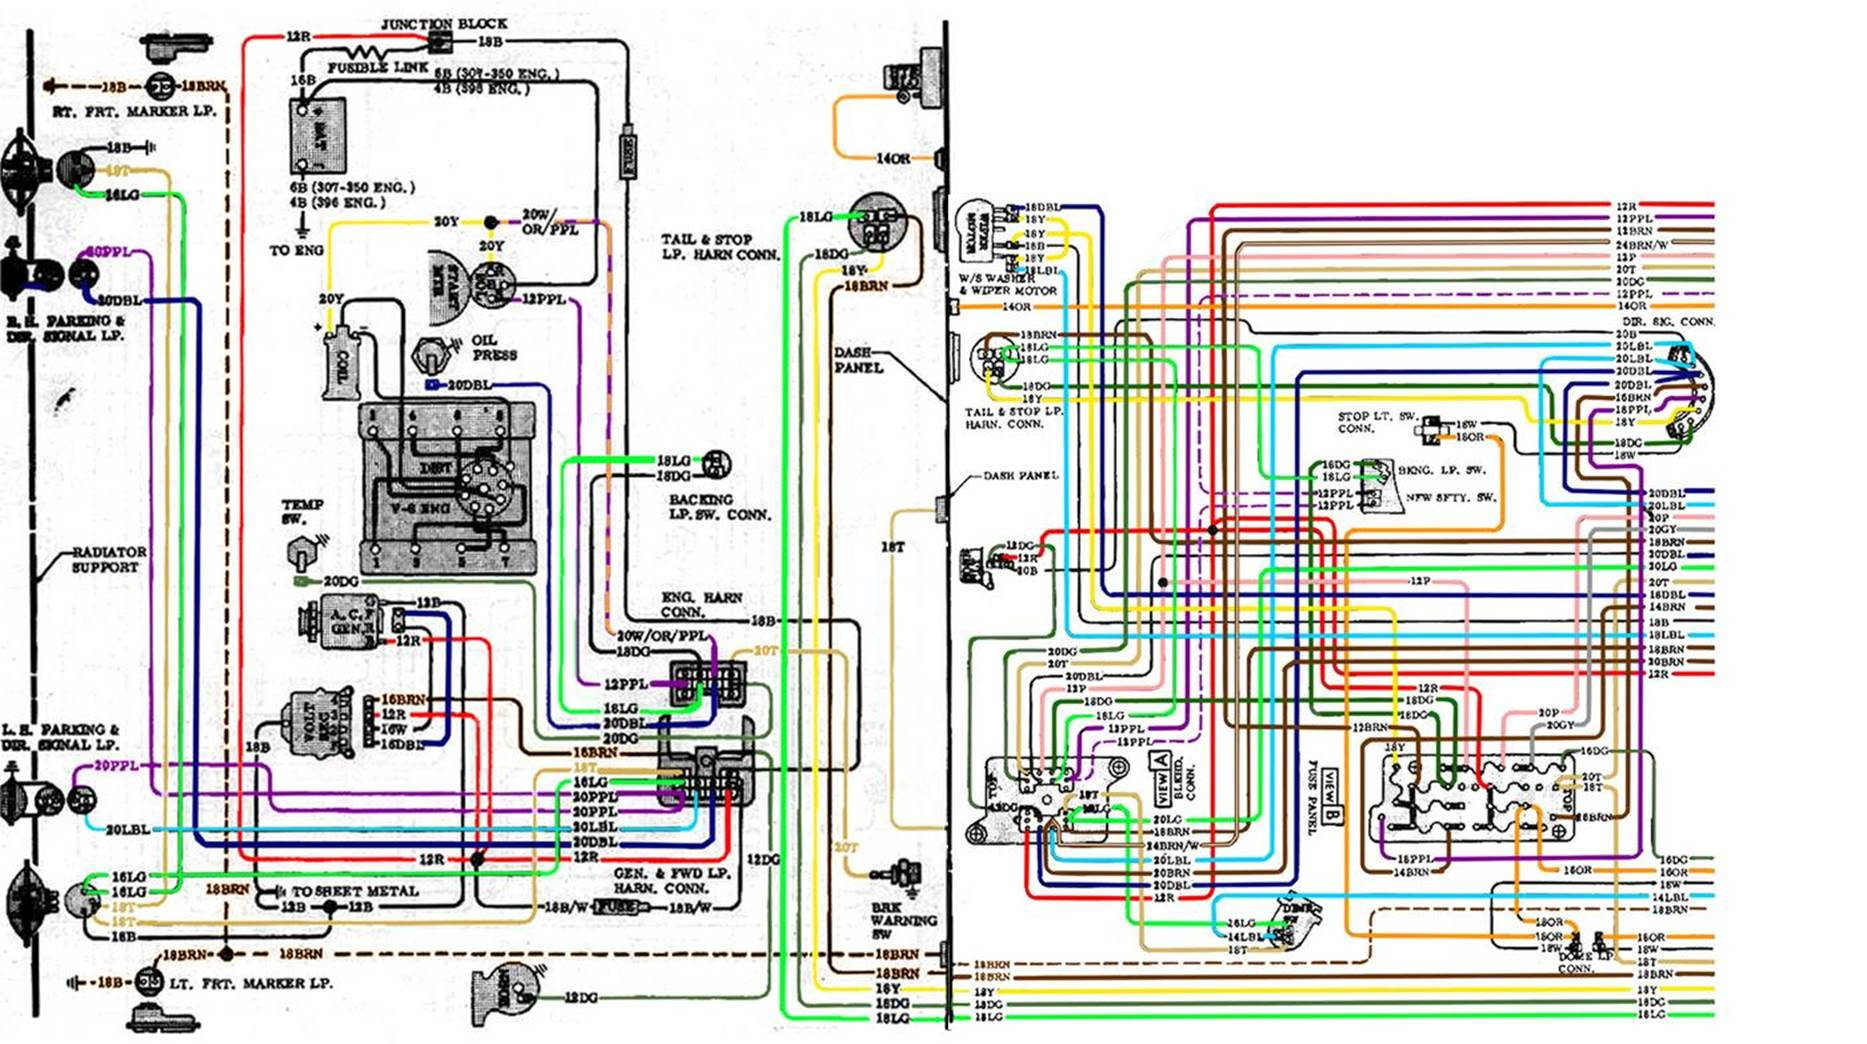 image002 67 72 chevy wiring diagram 67 firebird wiring diagram at nearapp.co